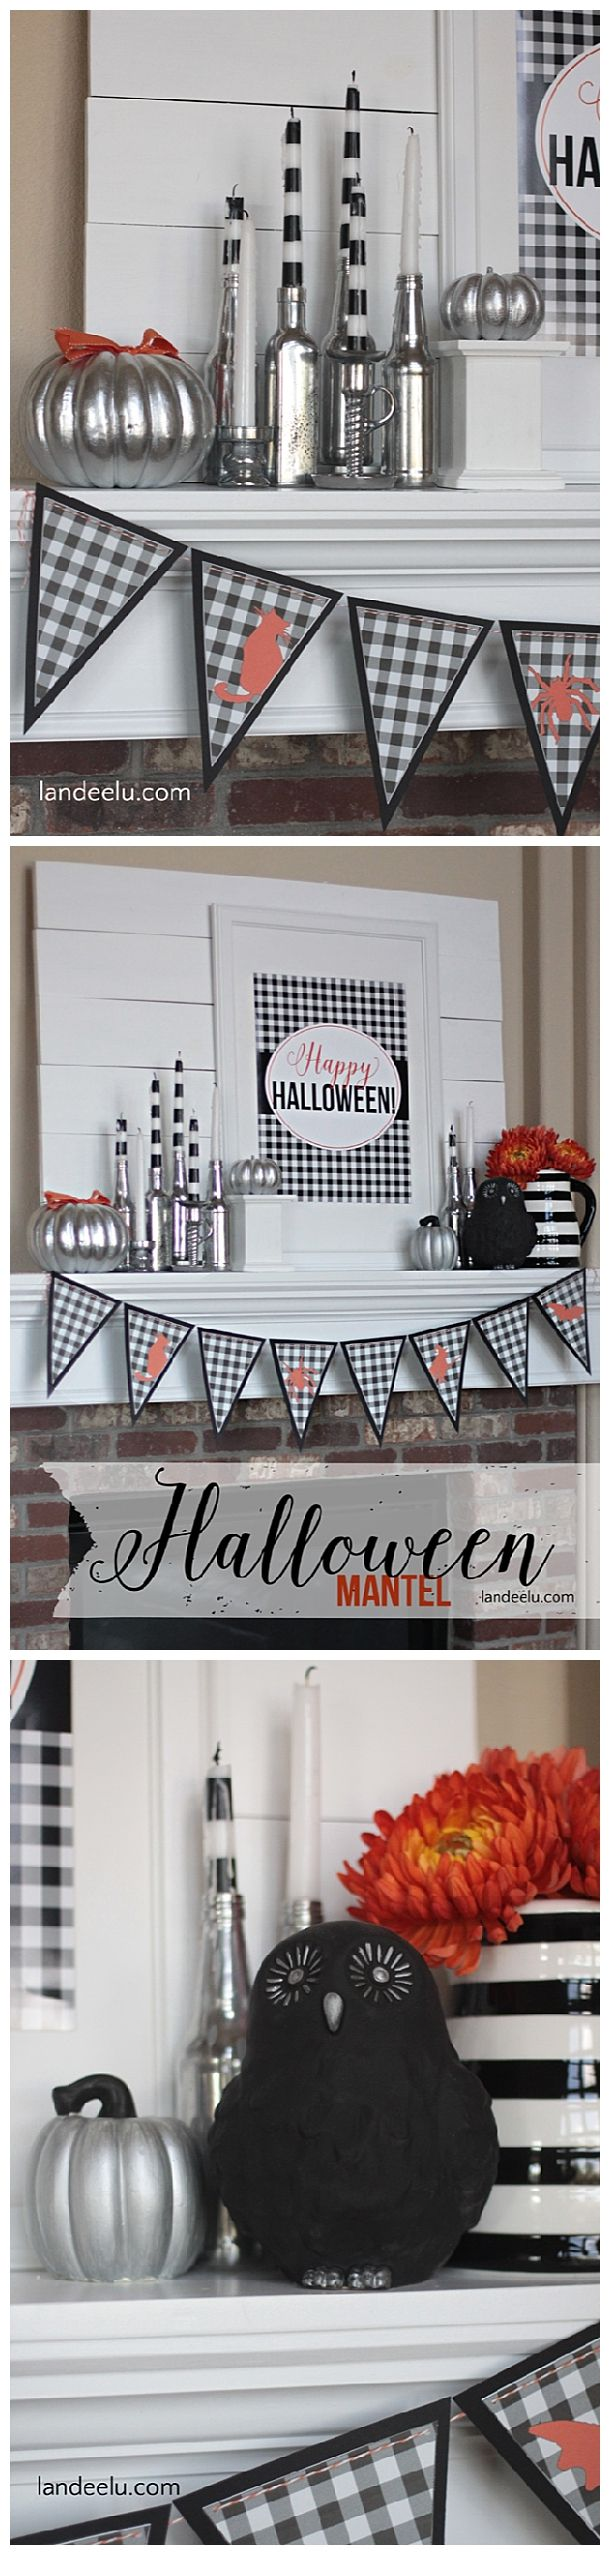 43 best decorate mantels images on pinterest mantels decor black and white halloween mantel diy decoration ideas with pops of orange so fun for solutioingenieria Gallery